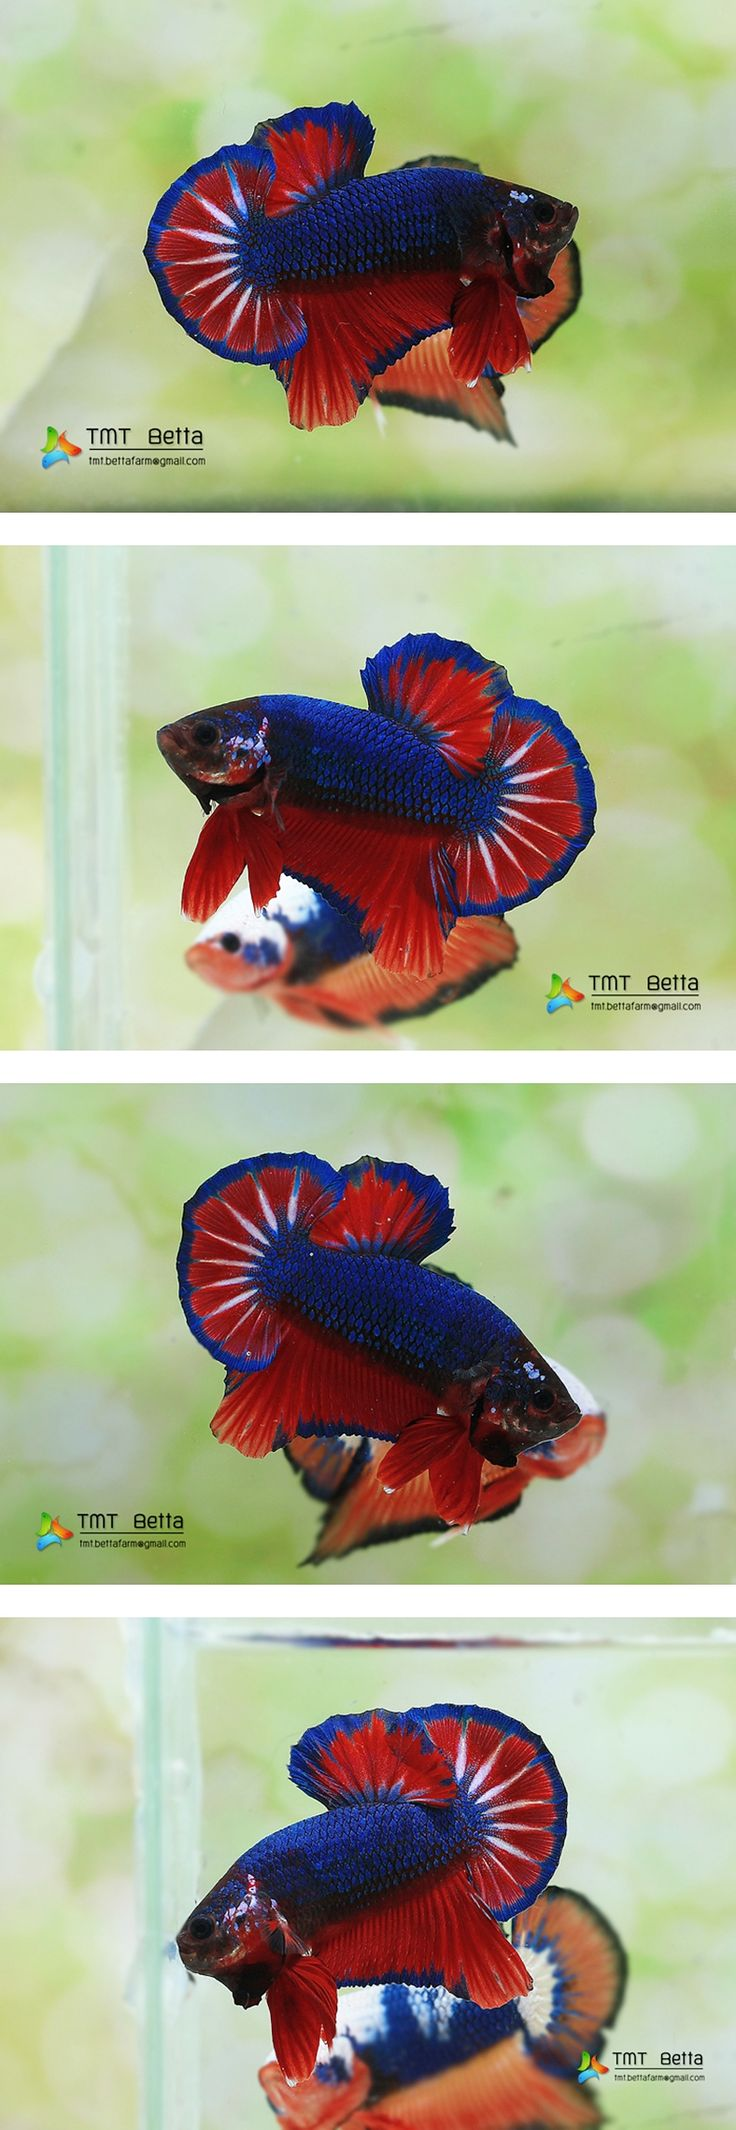 340 best Kampffische images on Pinterest | Betta, Betta fish and ...